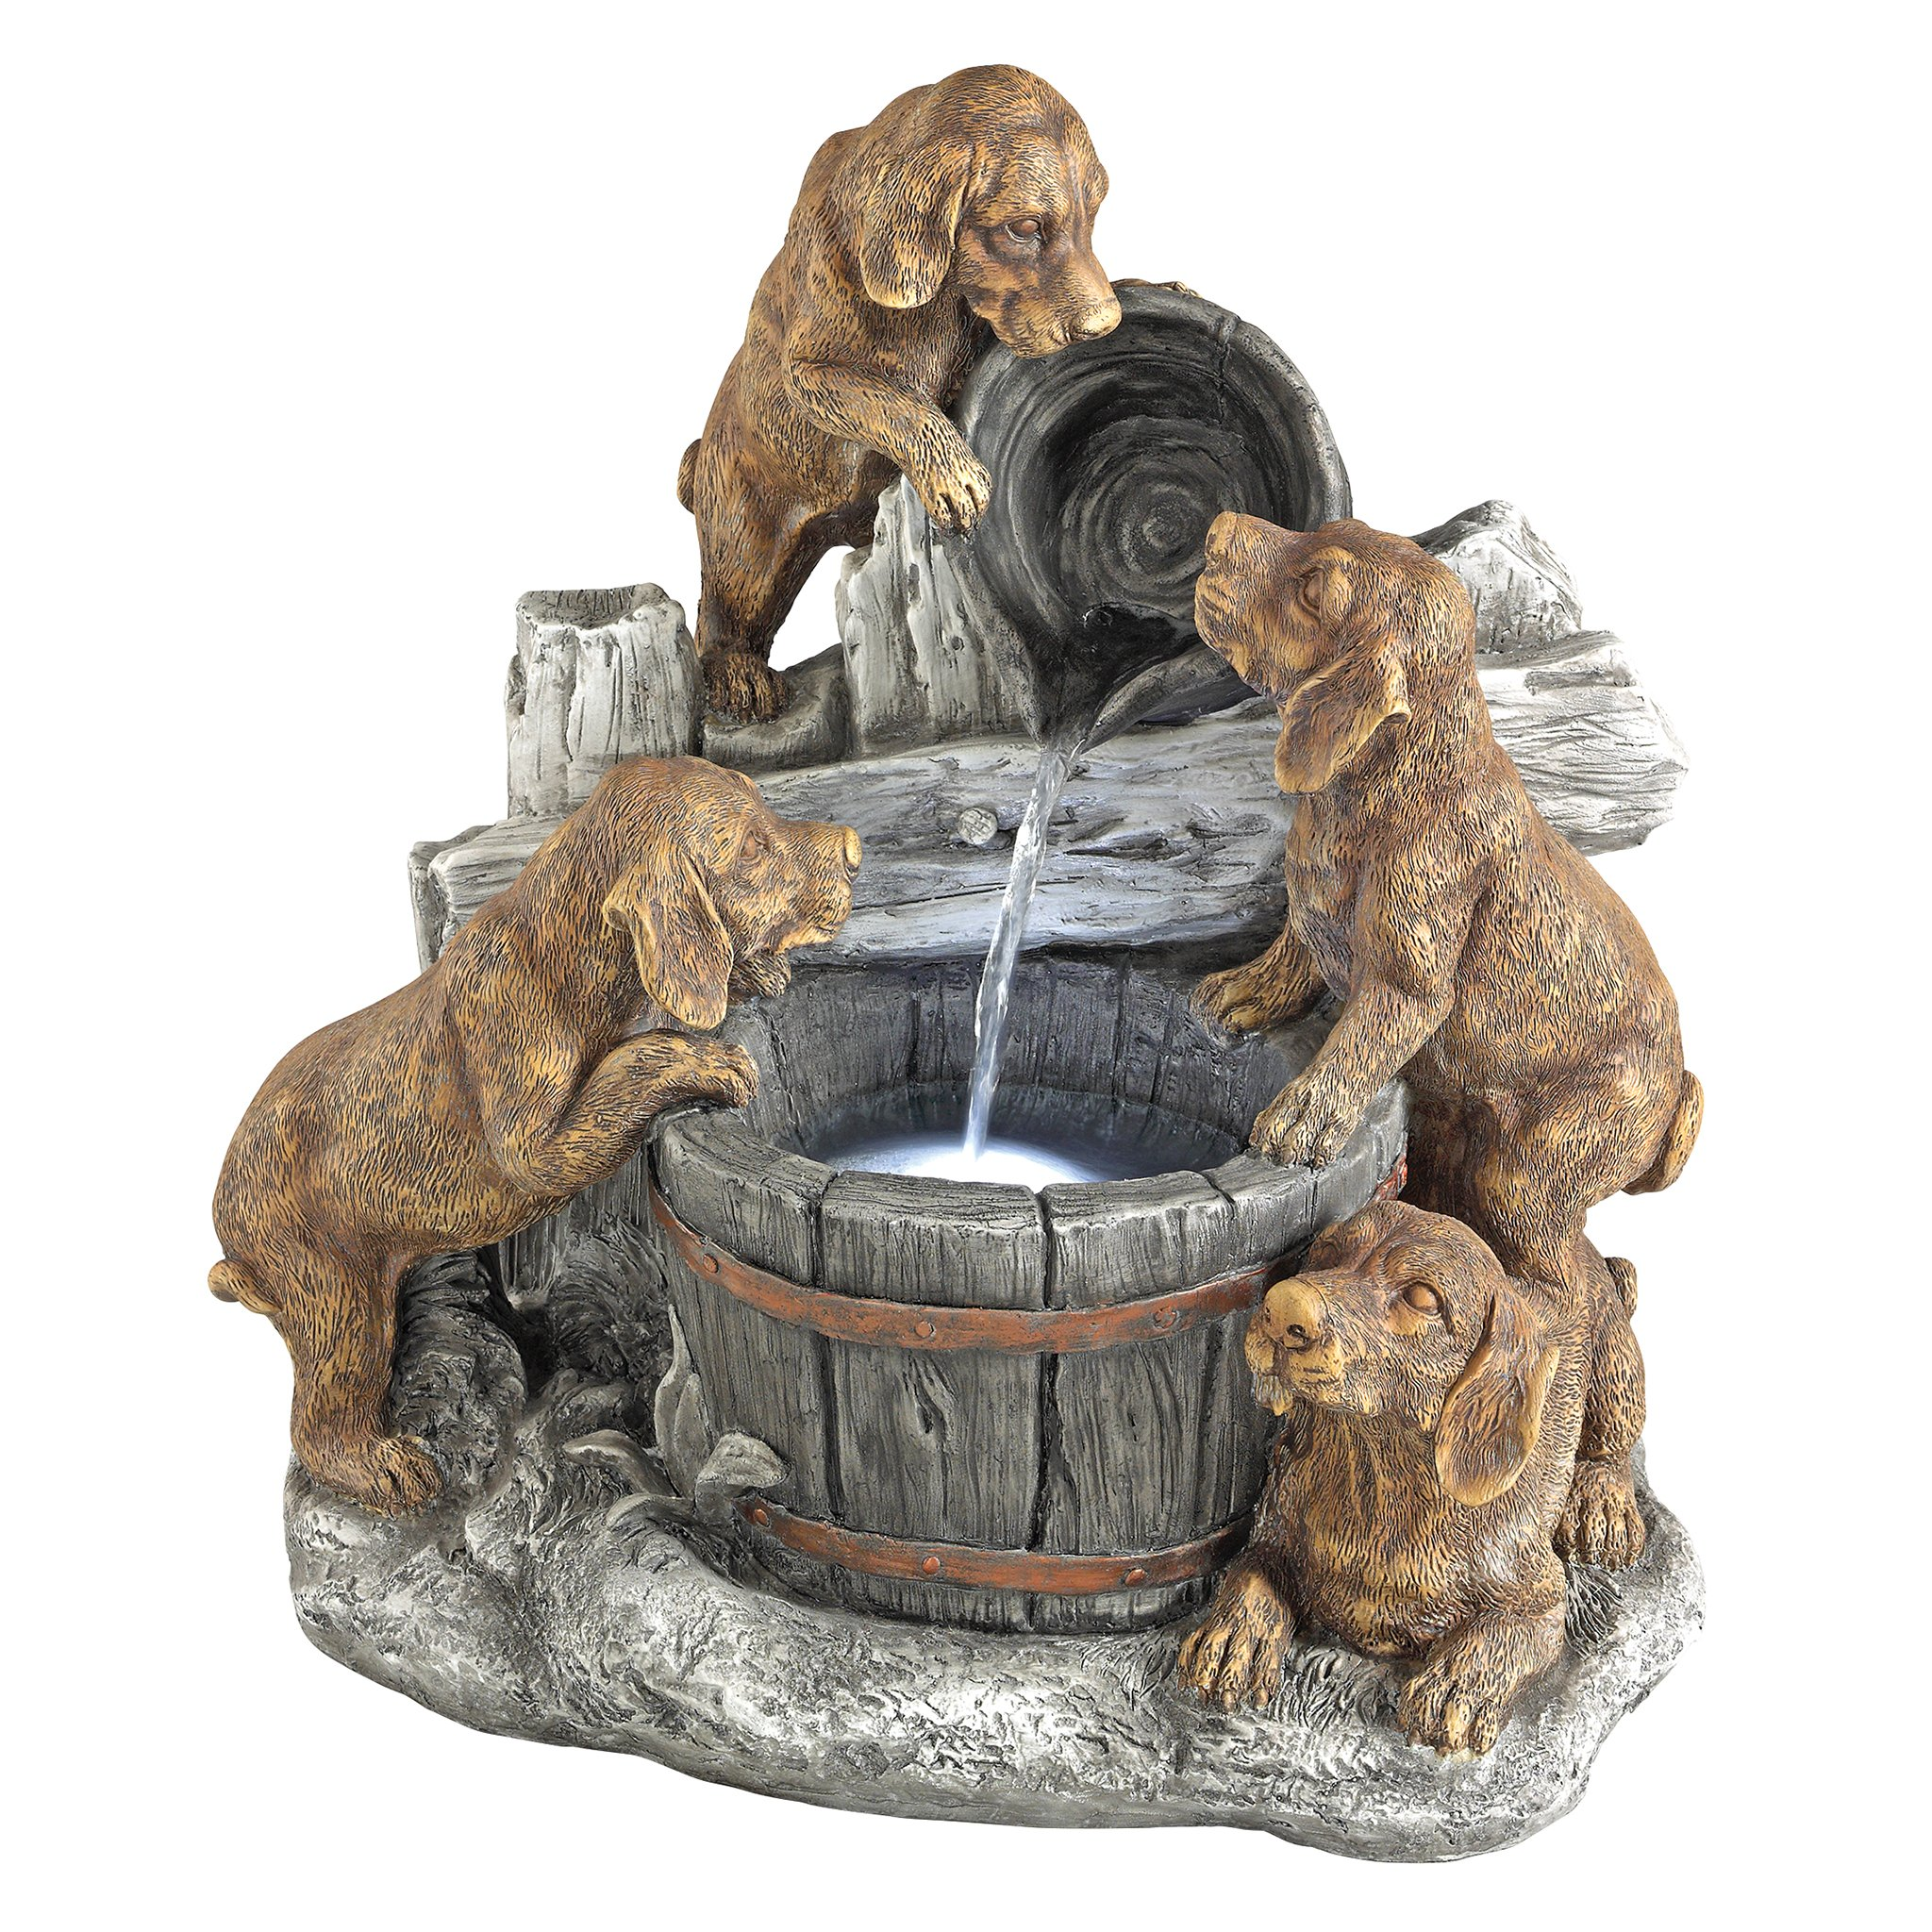 Design Toscano Puppy Pail Pour Dog Garden Decor Cascading Fountain Water Feature, 21 Inch, Polyresin with LED Lights, Full Color